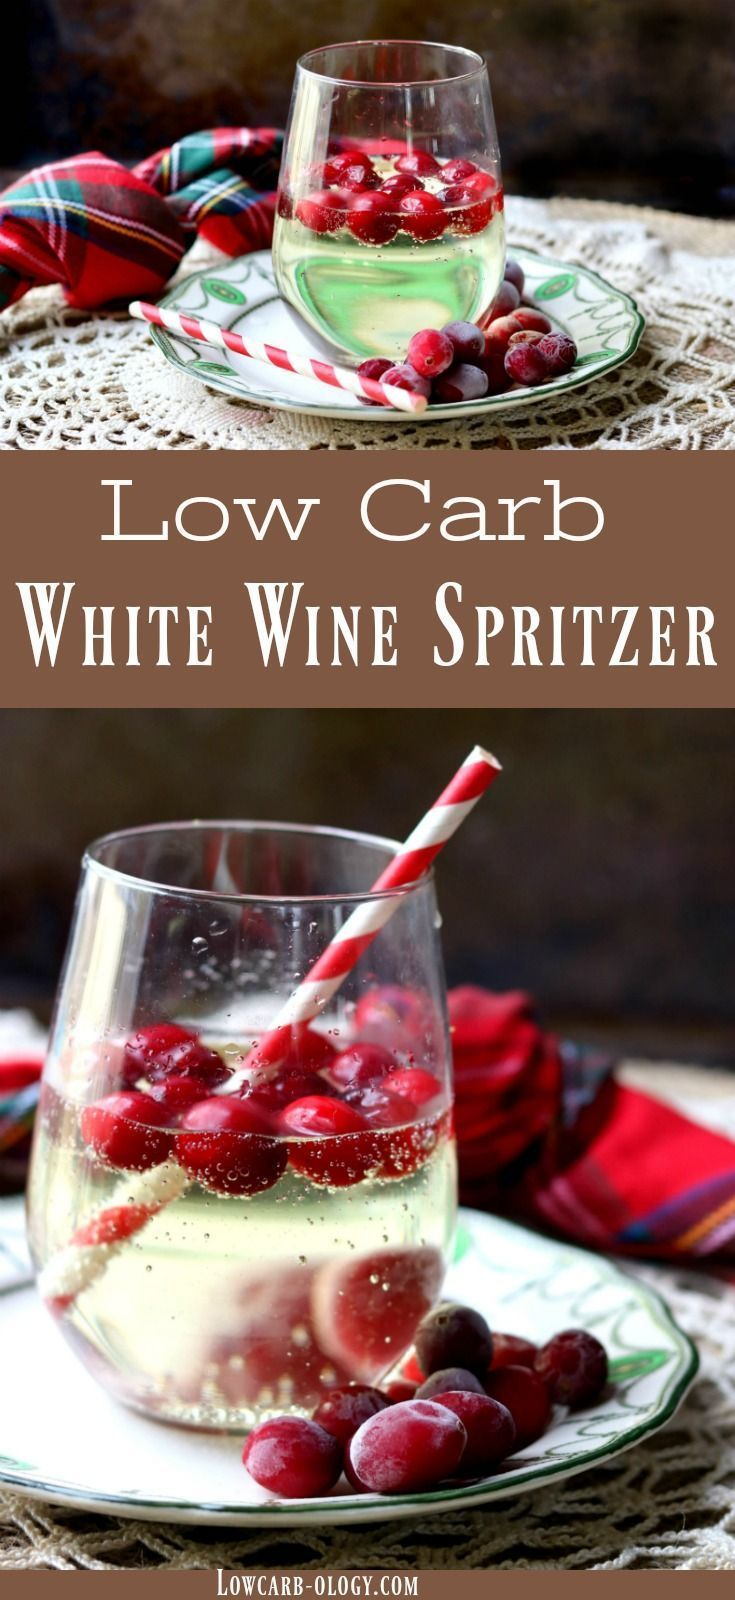 White Wine Spritzer Light Sparkly And Low Carb Lowcarb Ology Recipe Wine Spritzer White Wine Spritzer Low Carb Cocktails